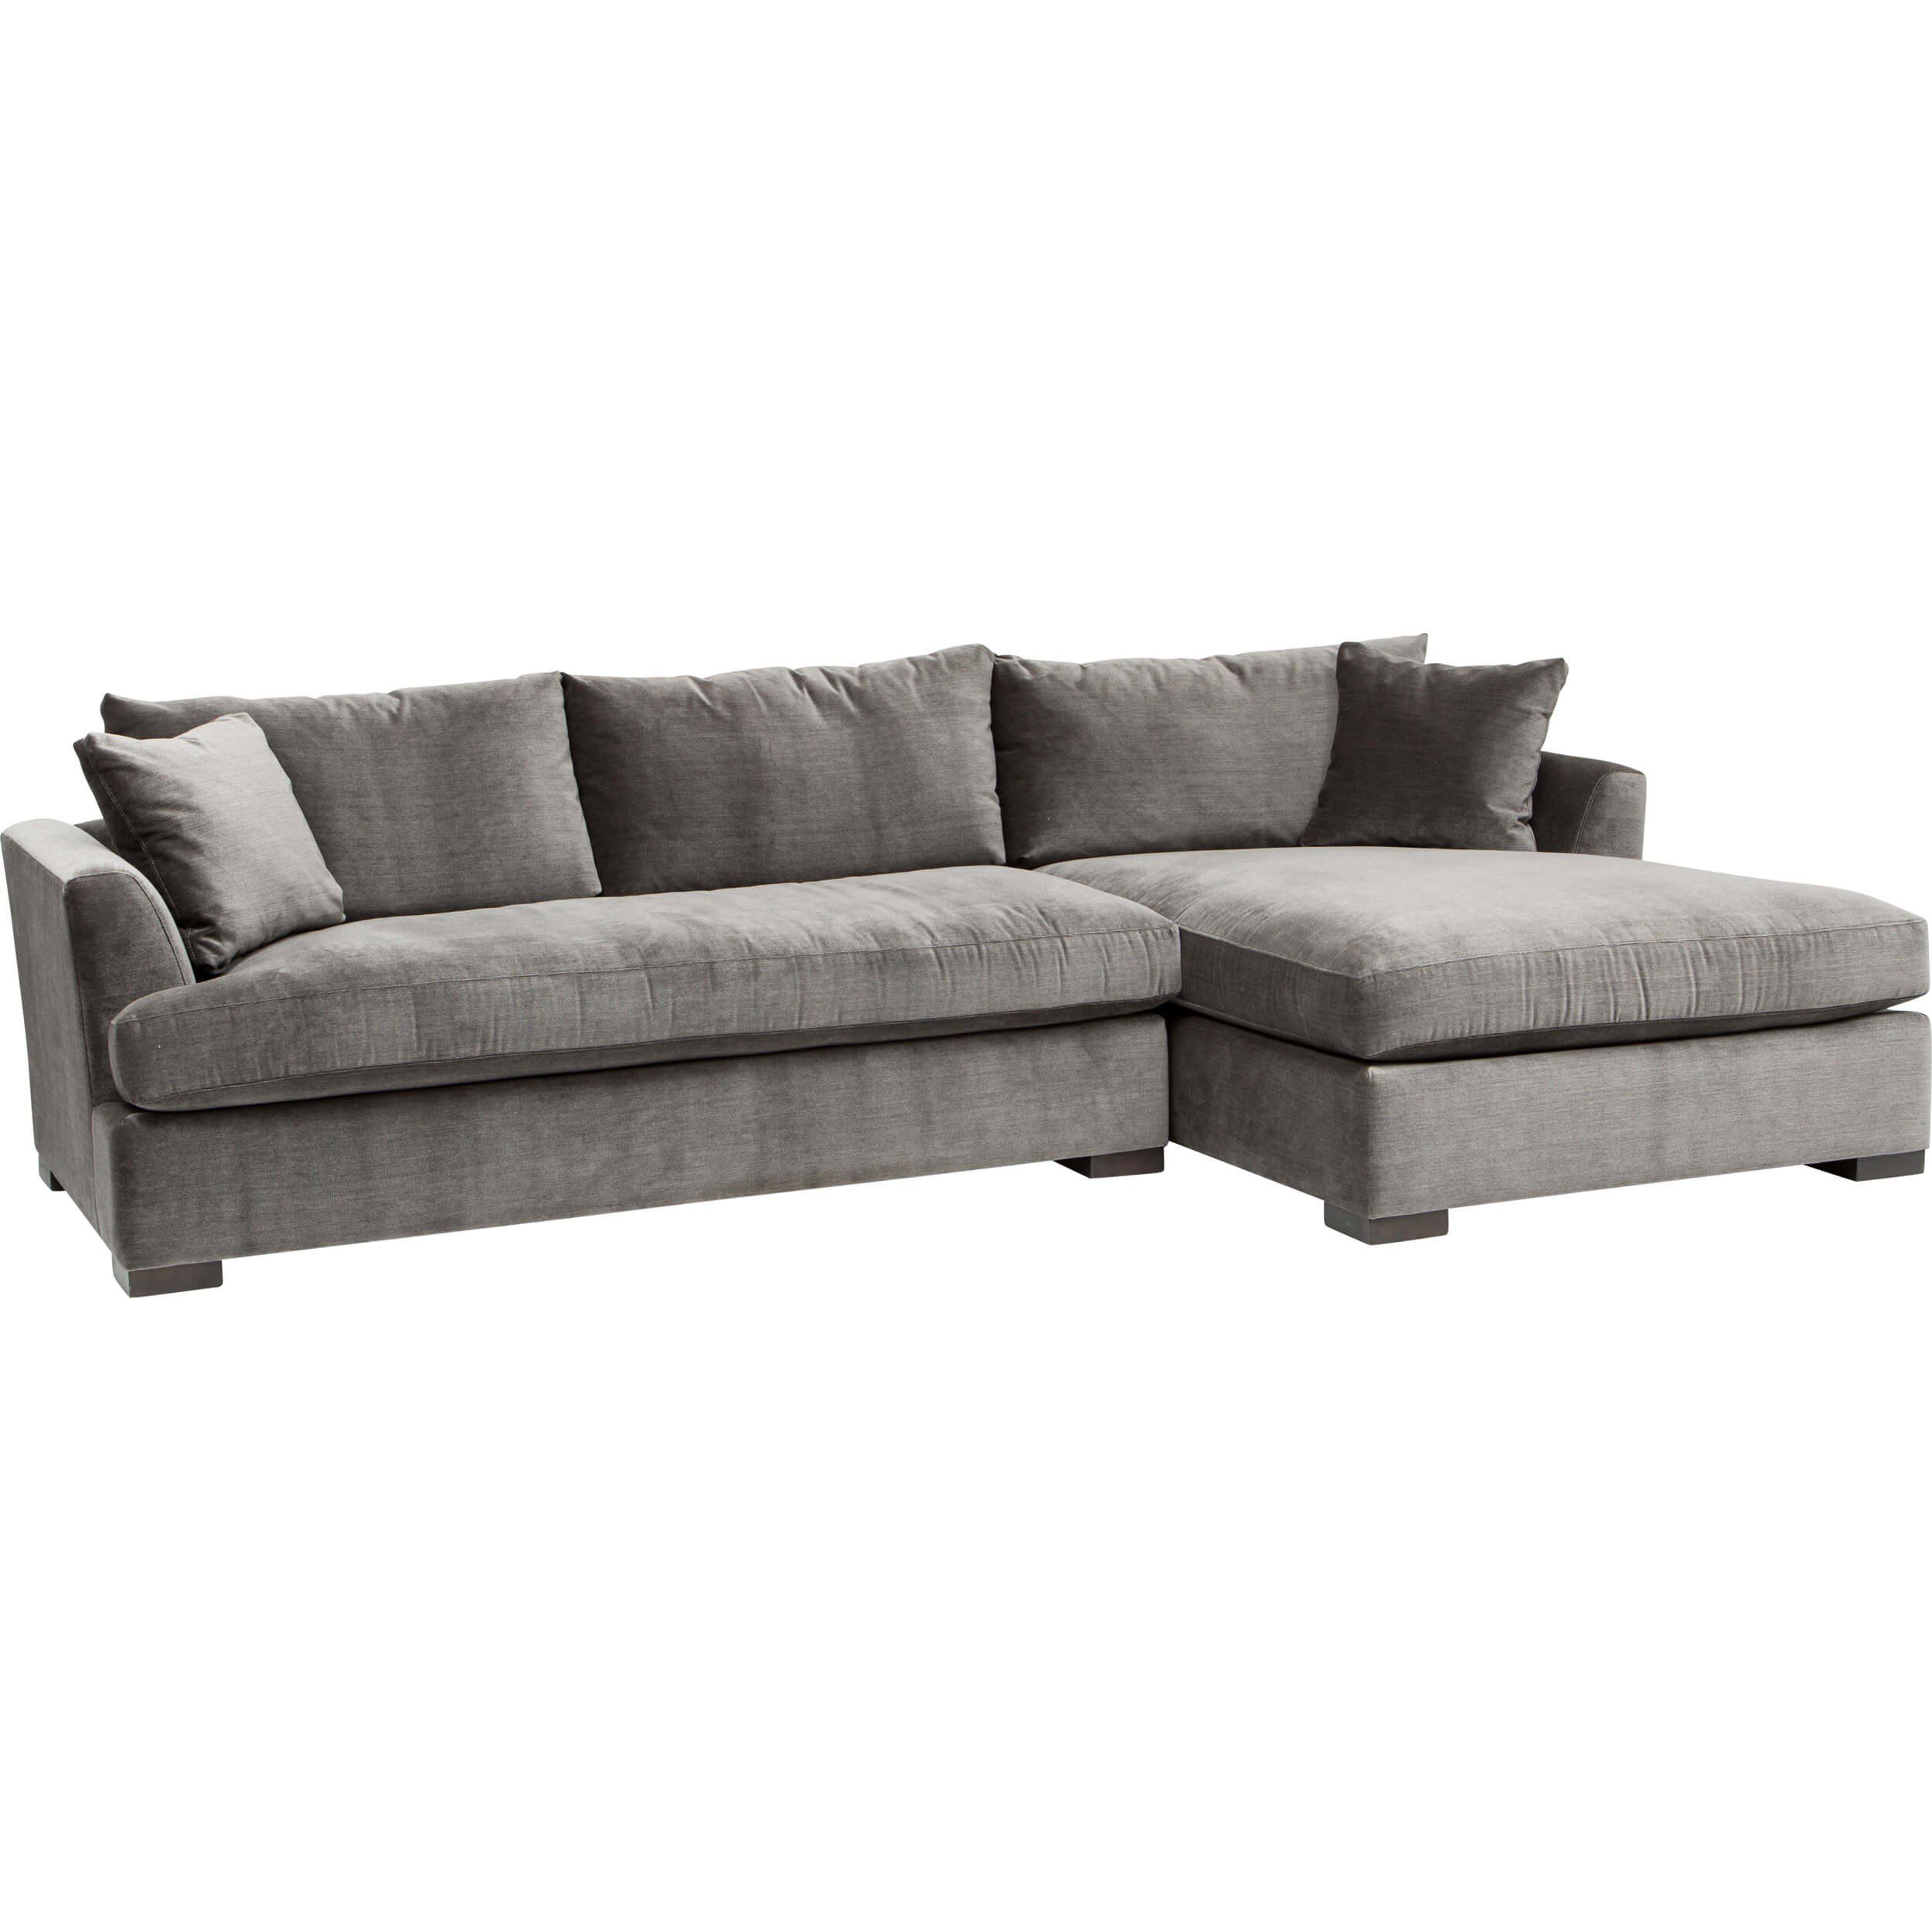 Cooper Sectional, Vernon Flannel Sofas Furniture | Couch